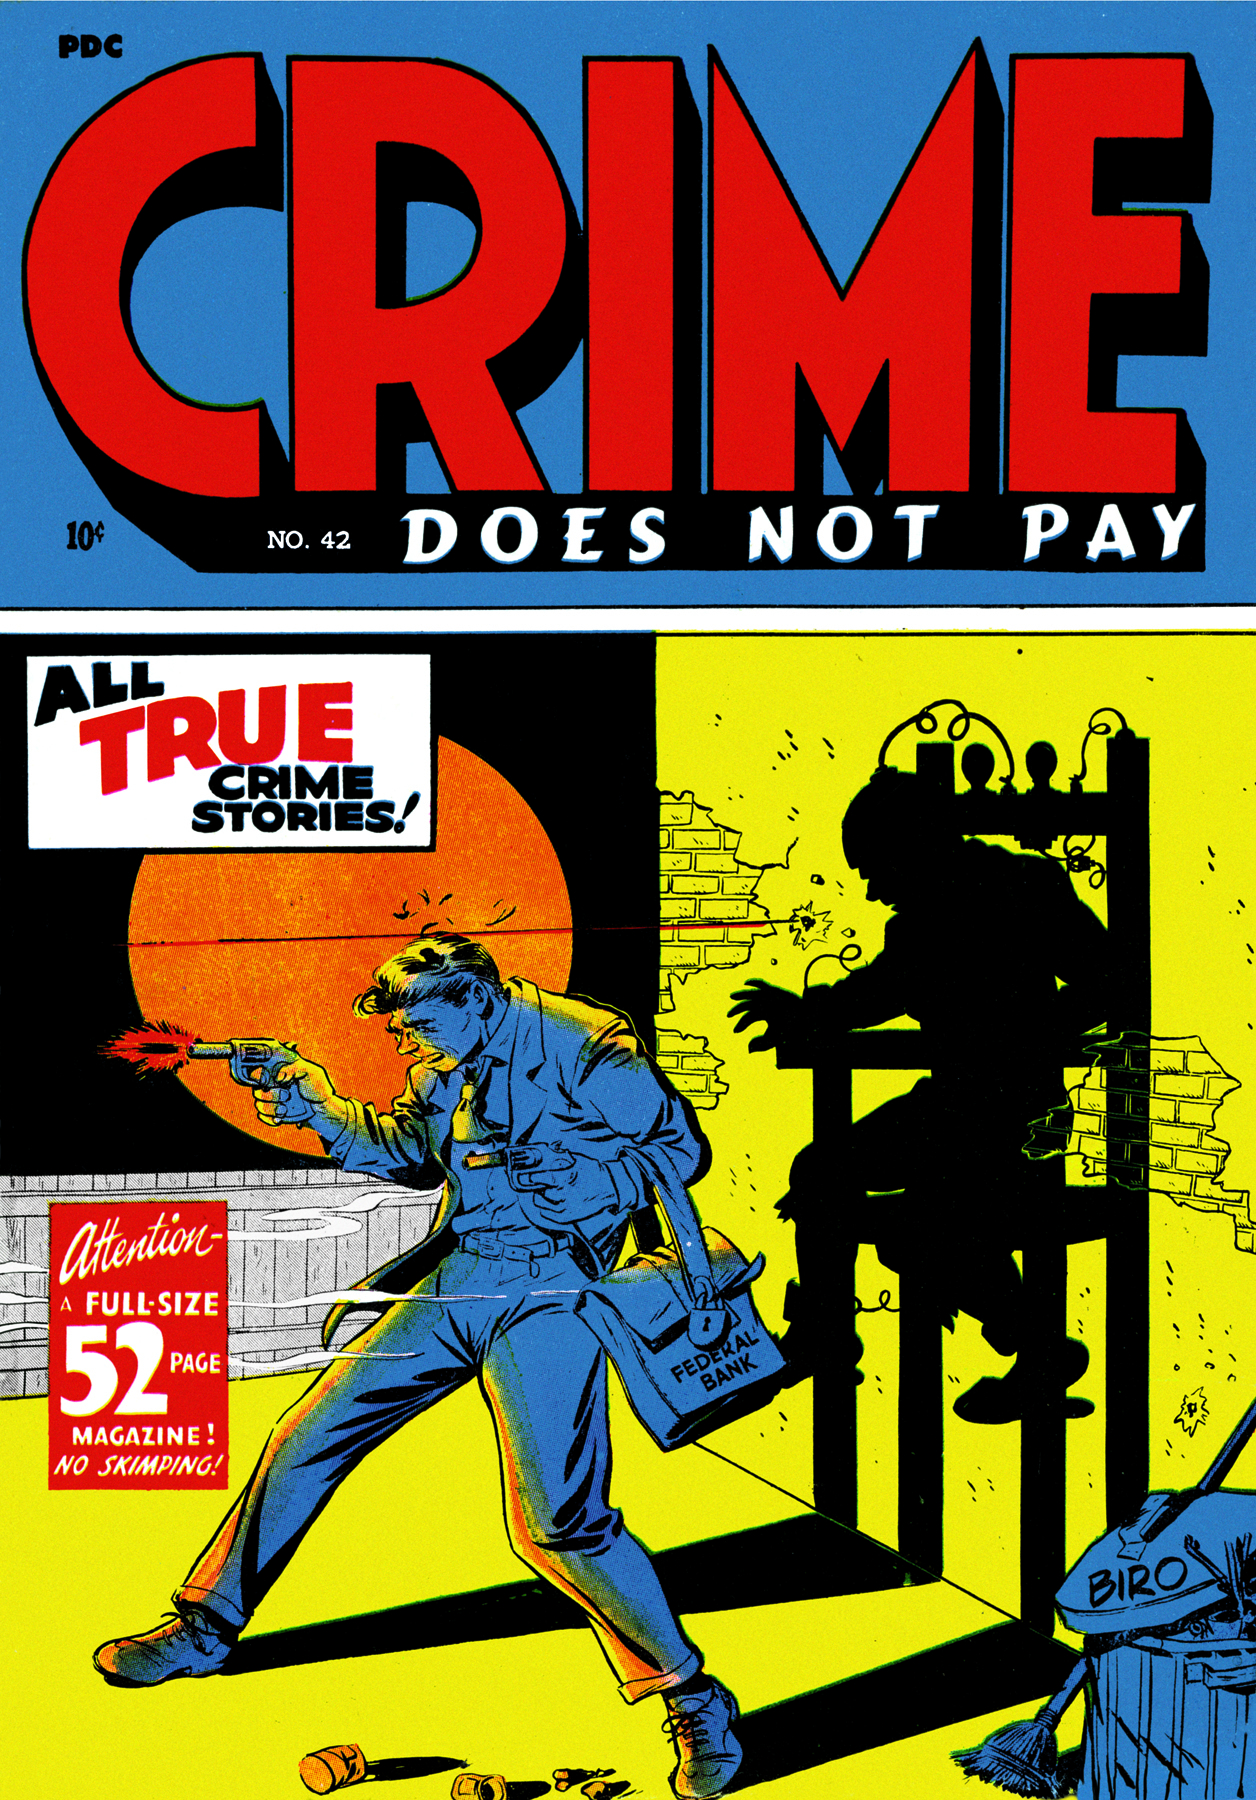 does crime pay a criminal pursuit of Does crime pay thefbi standard survey of crimesshowed that for about 80% of all property crimes (burglary, larceny, car theft, etc), the criminals are never found and the case is never solved† suppose a neighborhood district in a large city suffers repeated property crimes, not always.